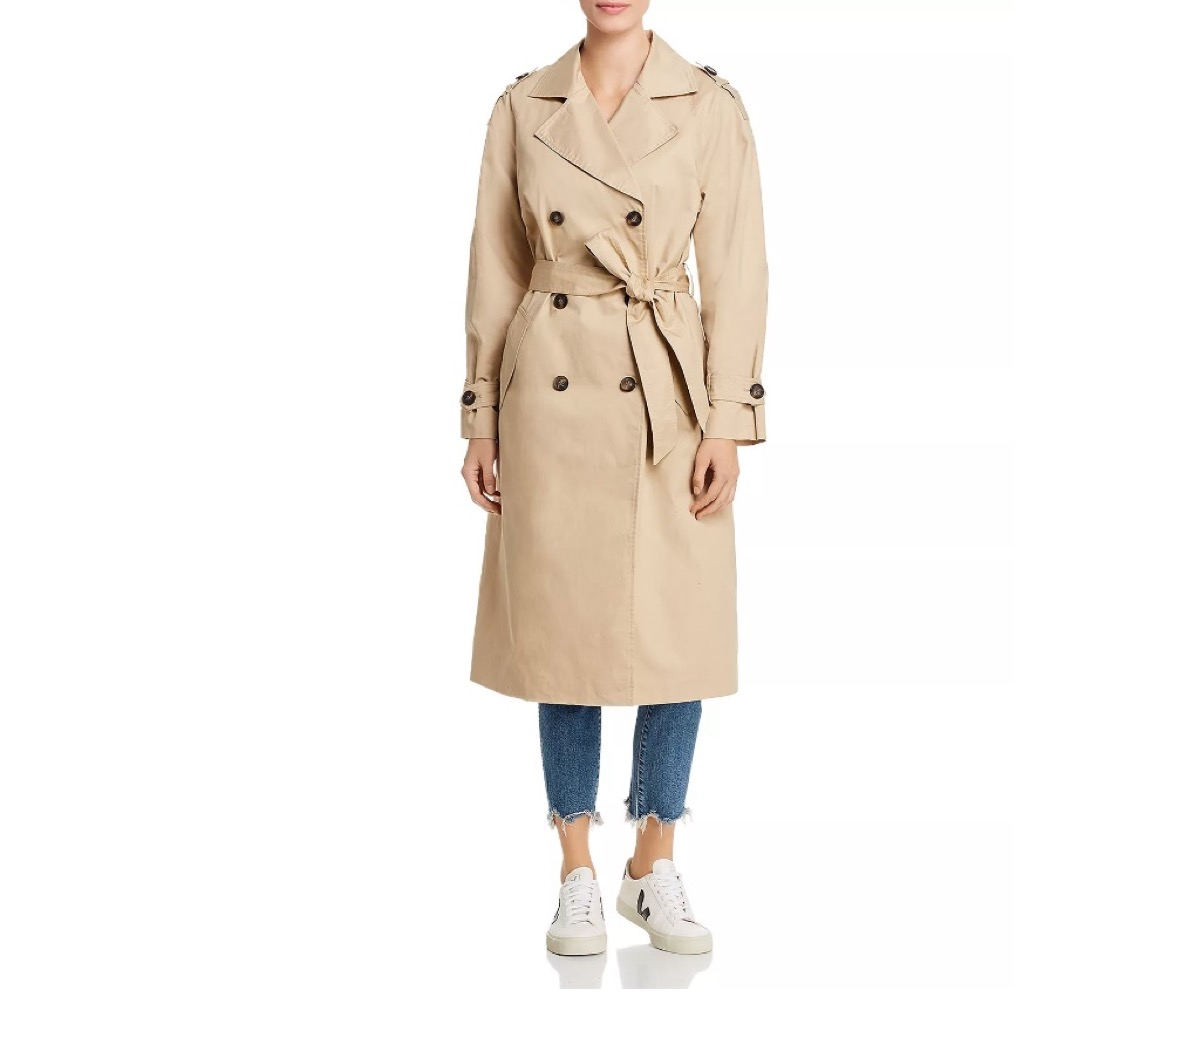 white woman in tan trench coat and cropped jeans